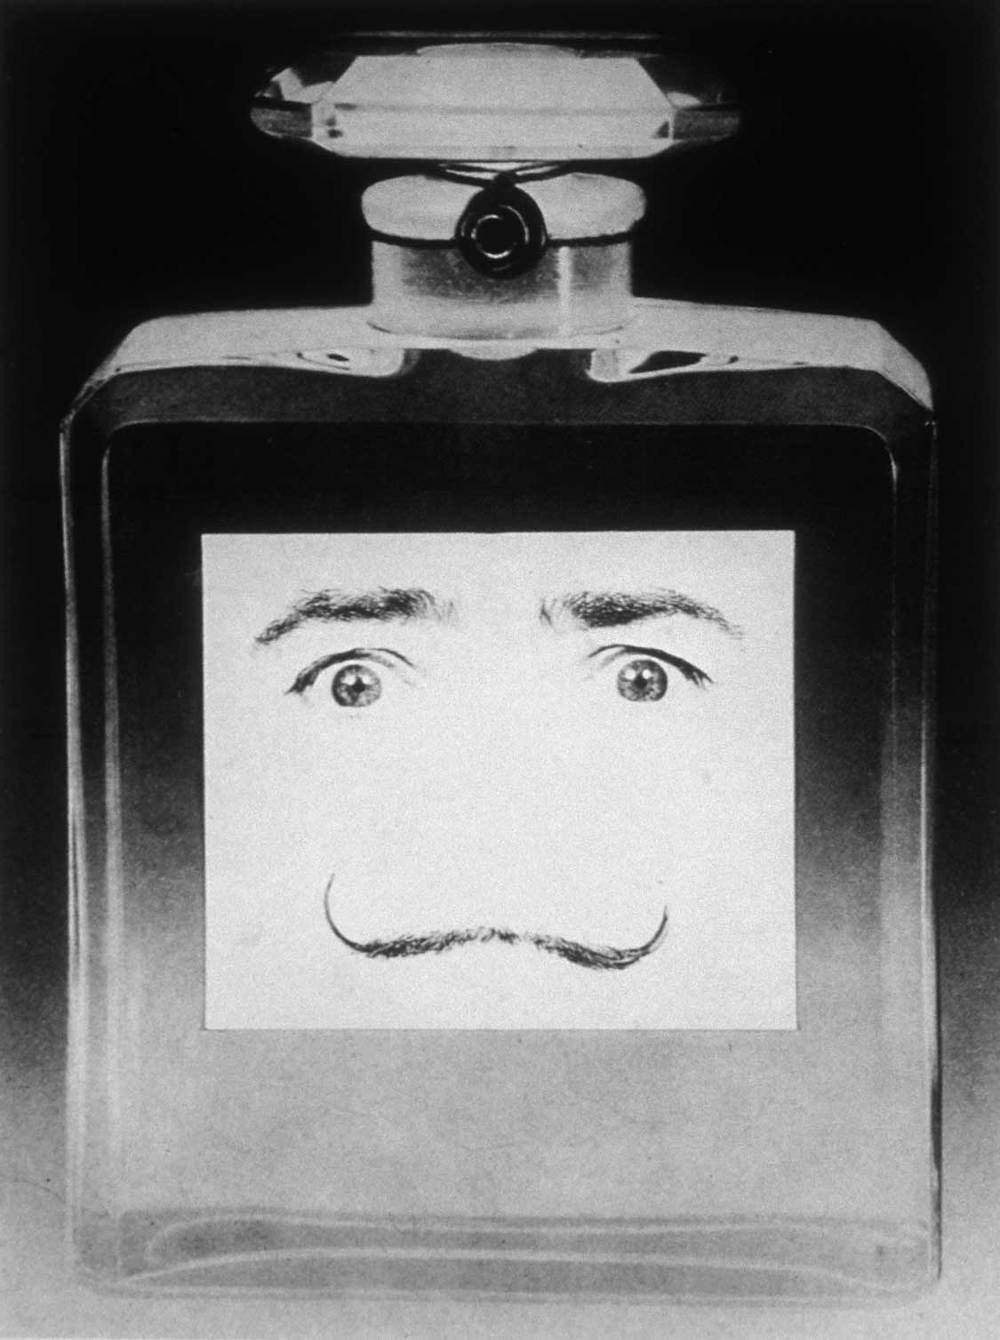 What is your favorite perfume? The essence of Dali. (1953-54). Gelatin silver print.